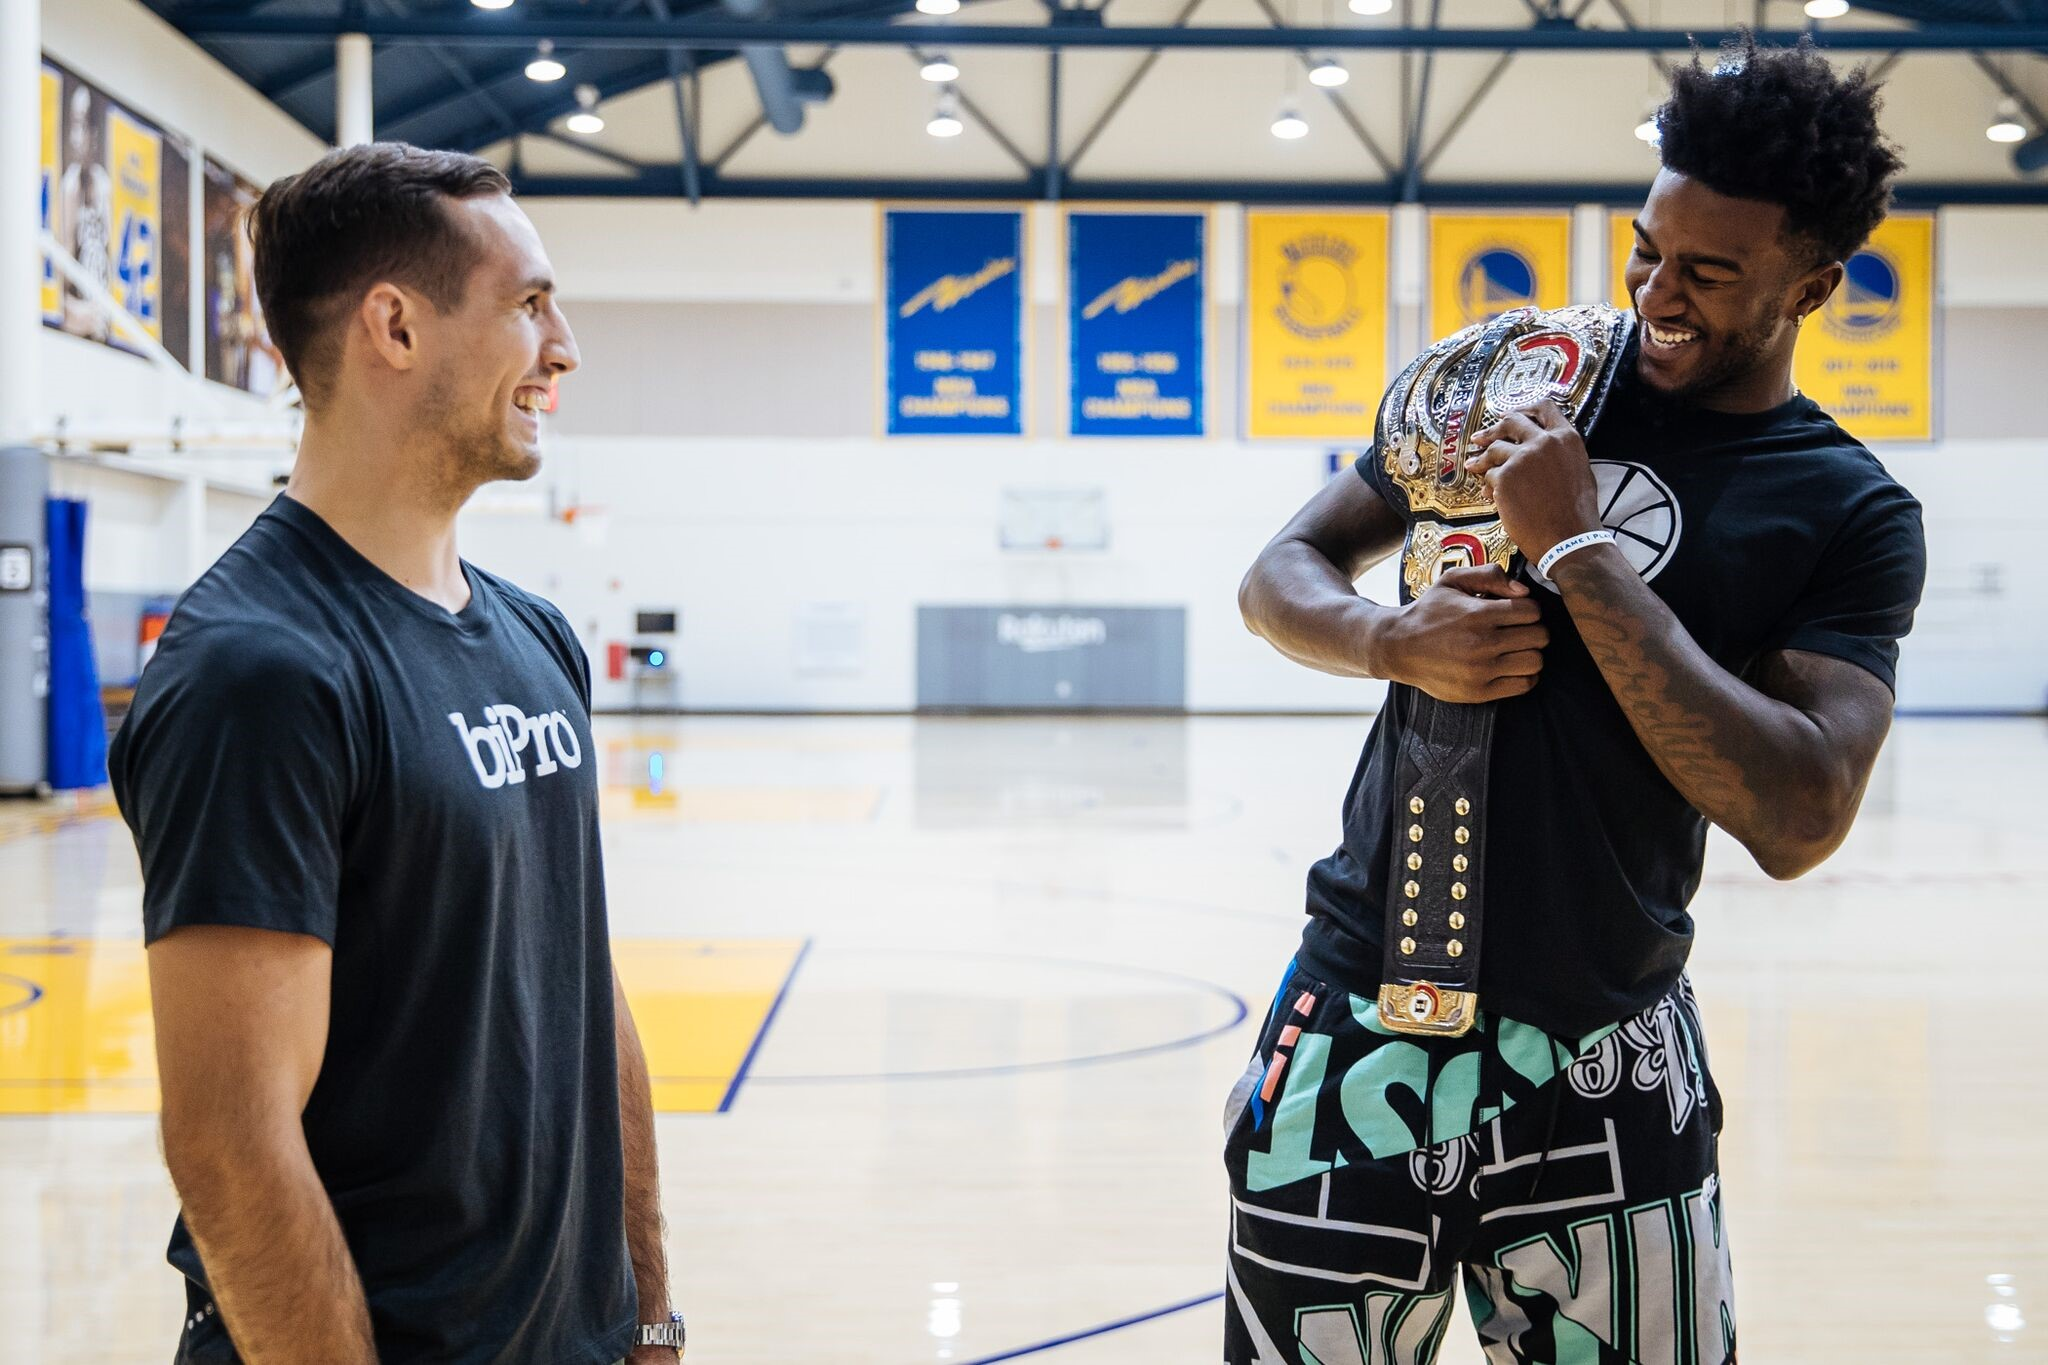 MMA super-fan and Warriors center Jordan Bell was reluctant to give Rory MacDonald his belt back.